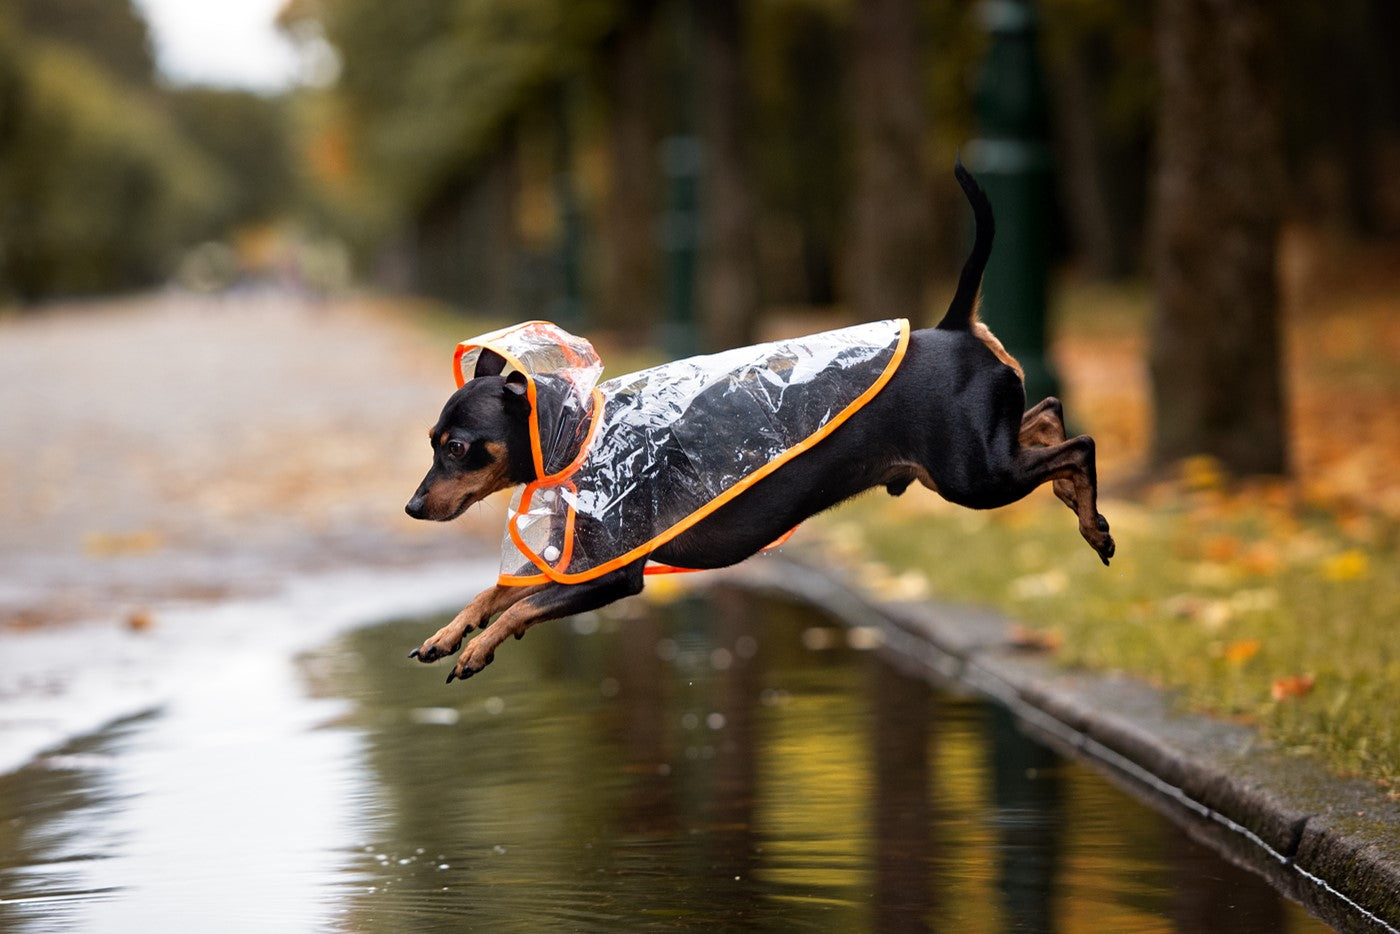 brown and black weiner dog wearing a clear raincoat jumping over a puddle